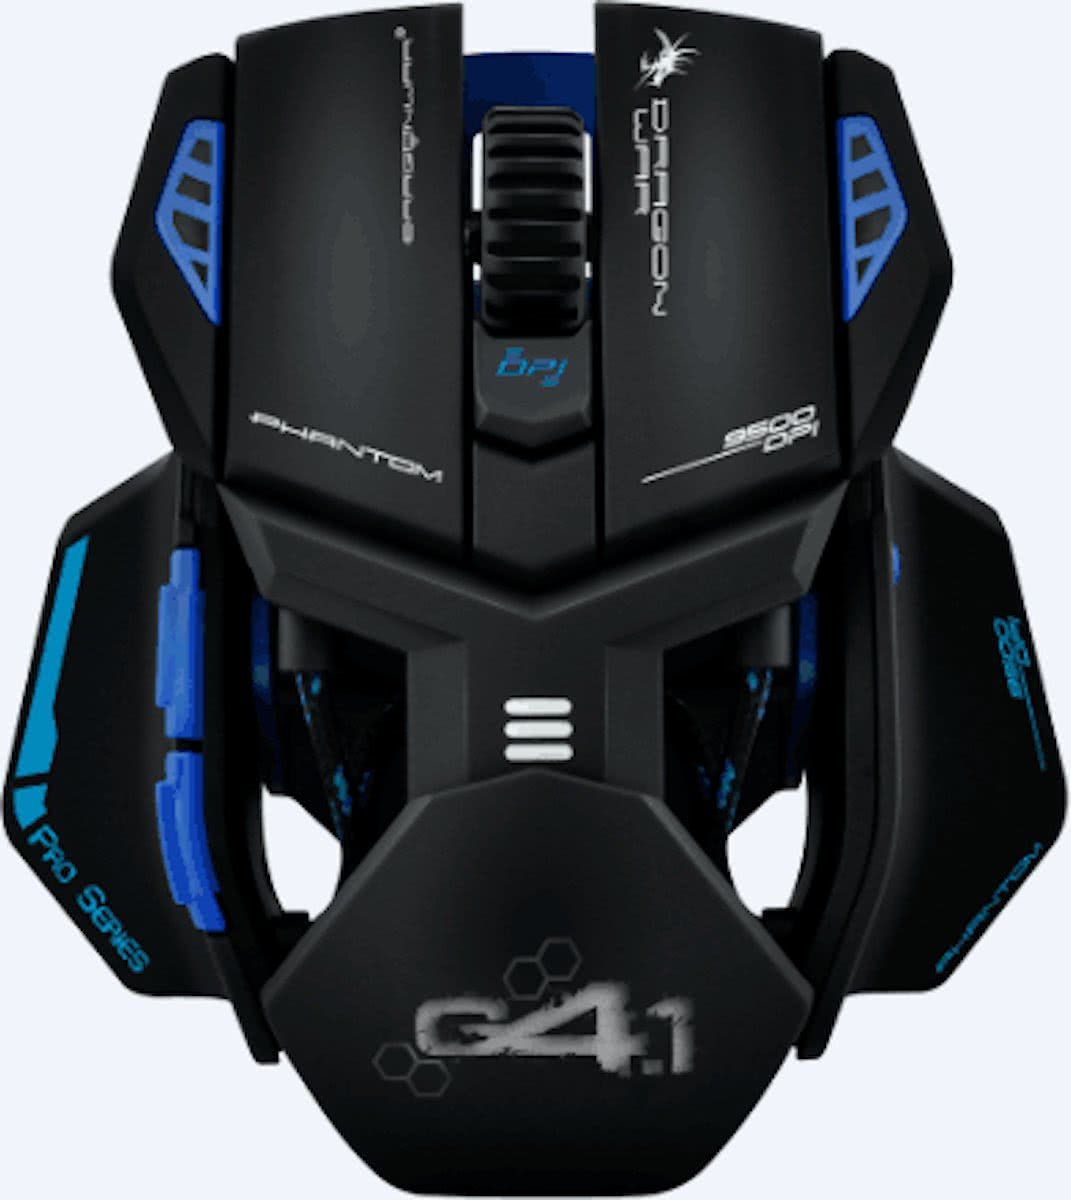 Dragonwar - G4.1 Phantom Blauw